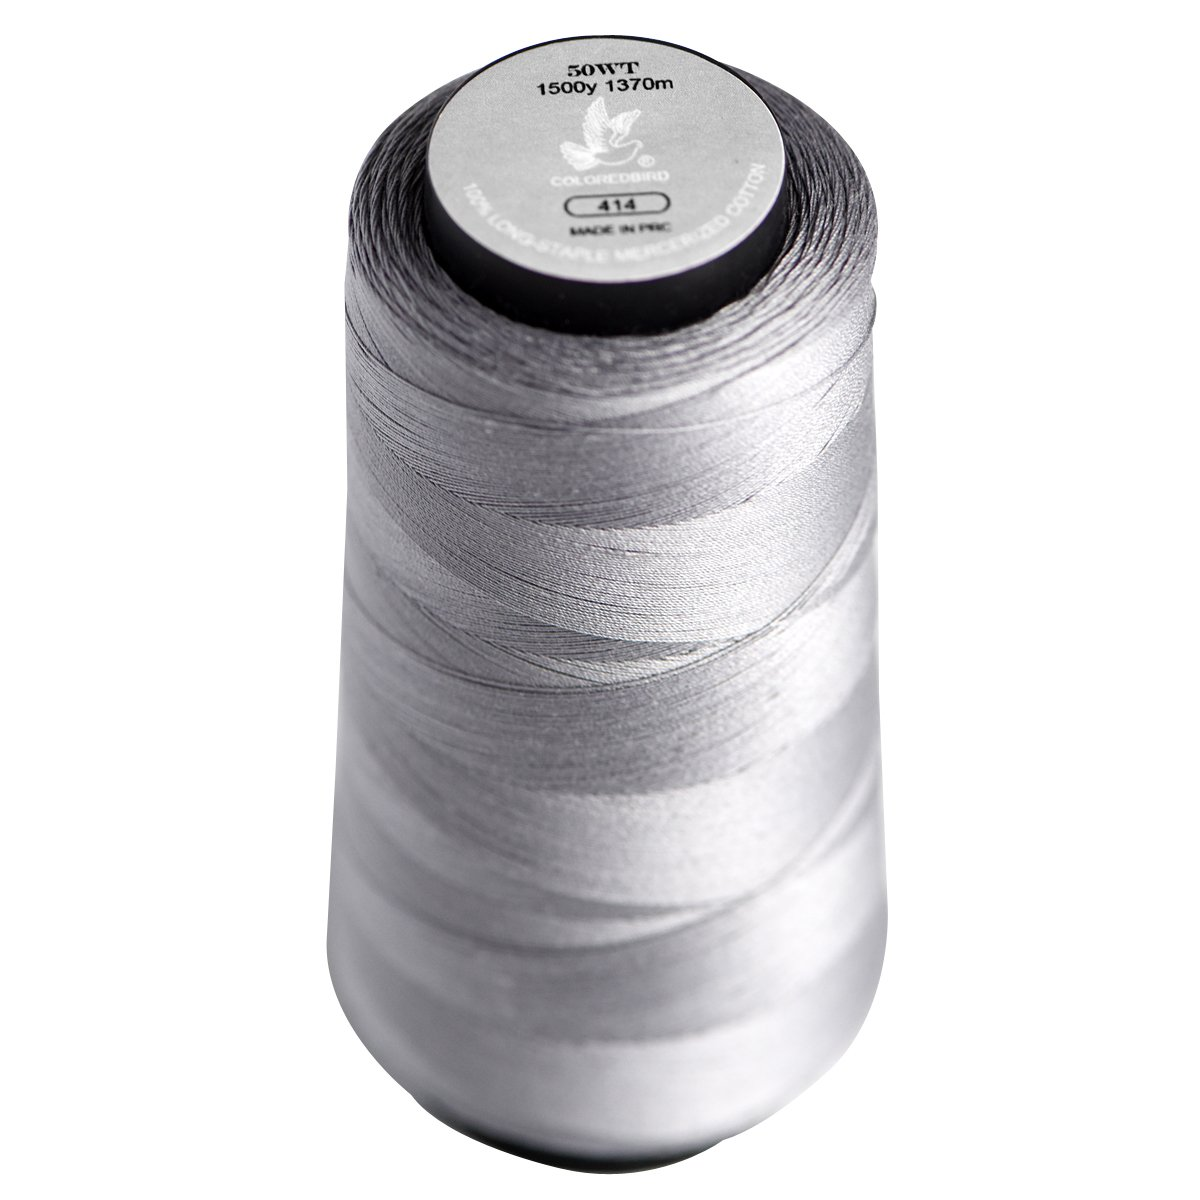 Color Bird 50WT-Solid Grey Long Staple Cotton Sewing Thread,Serger Spool Thread Set -1500Yards/1370m-for Quilting, Single Needle,Machine Embroidery,Overlock, Merrow (Color No,:414) cq